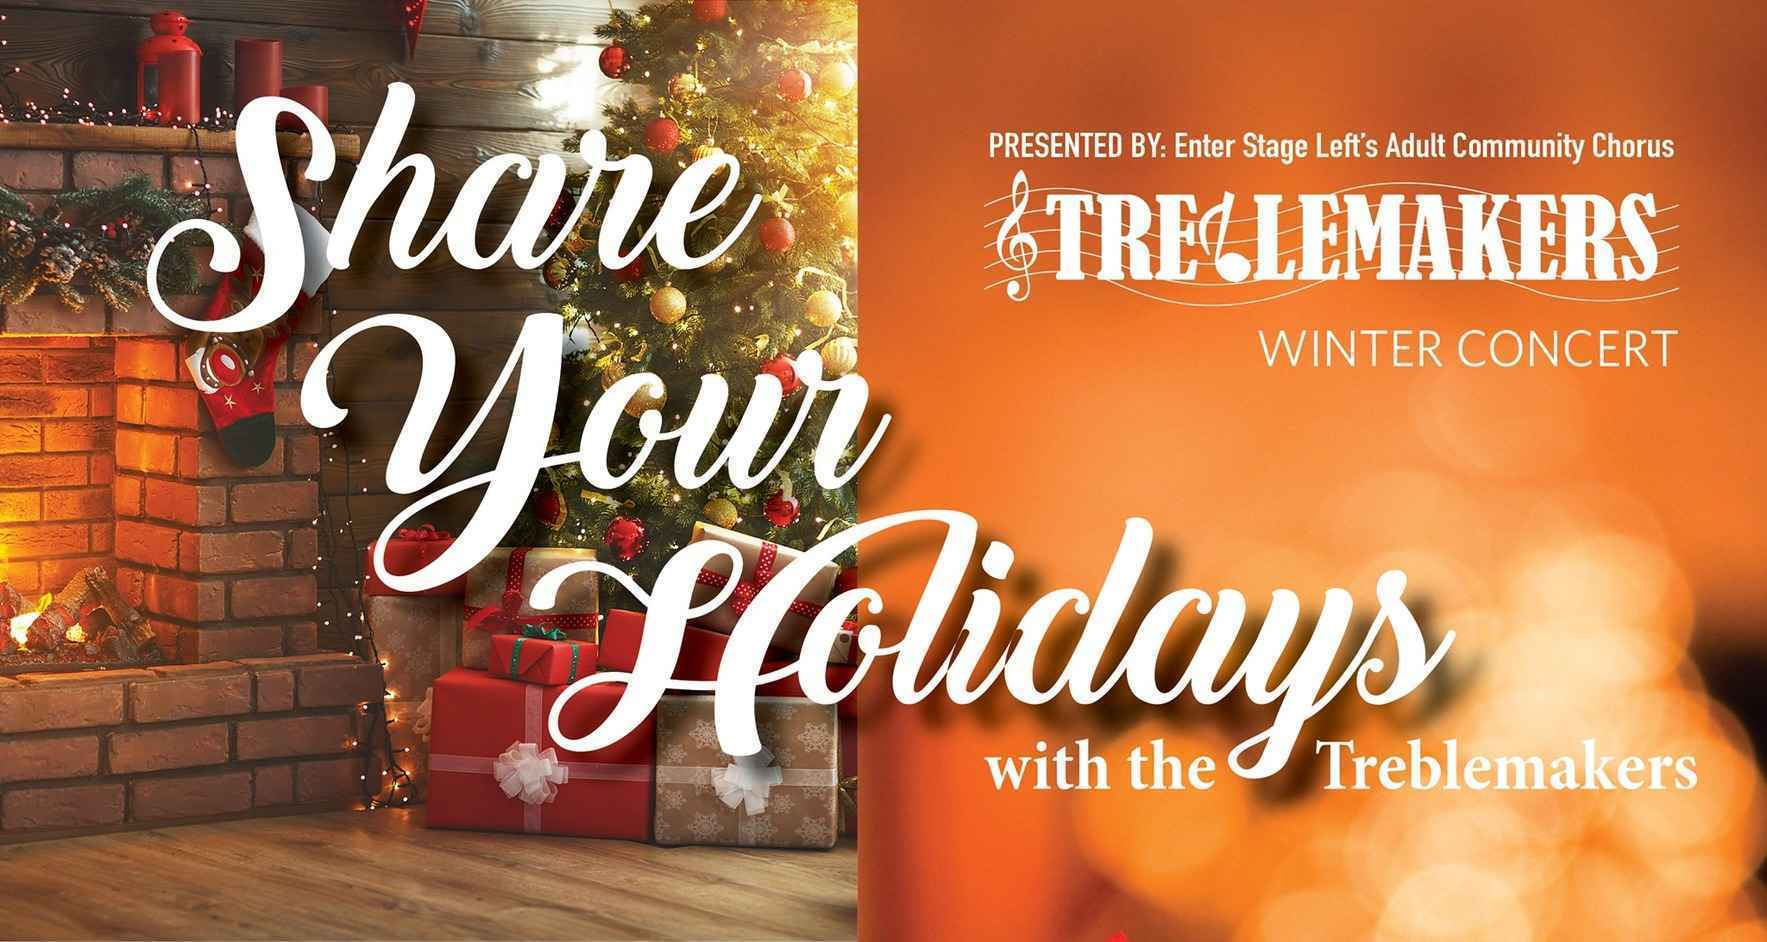 Treblemakers Holiday Concert image